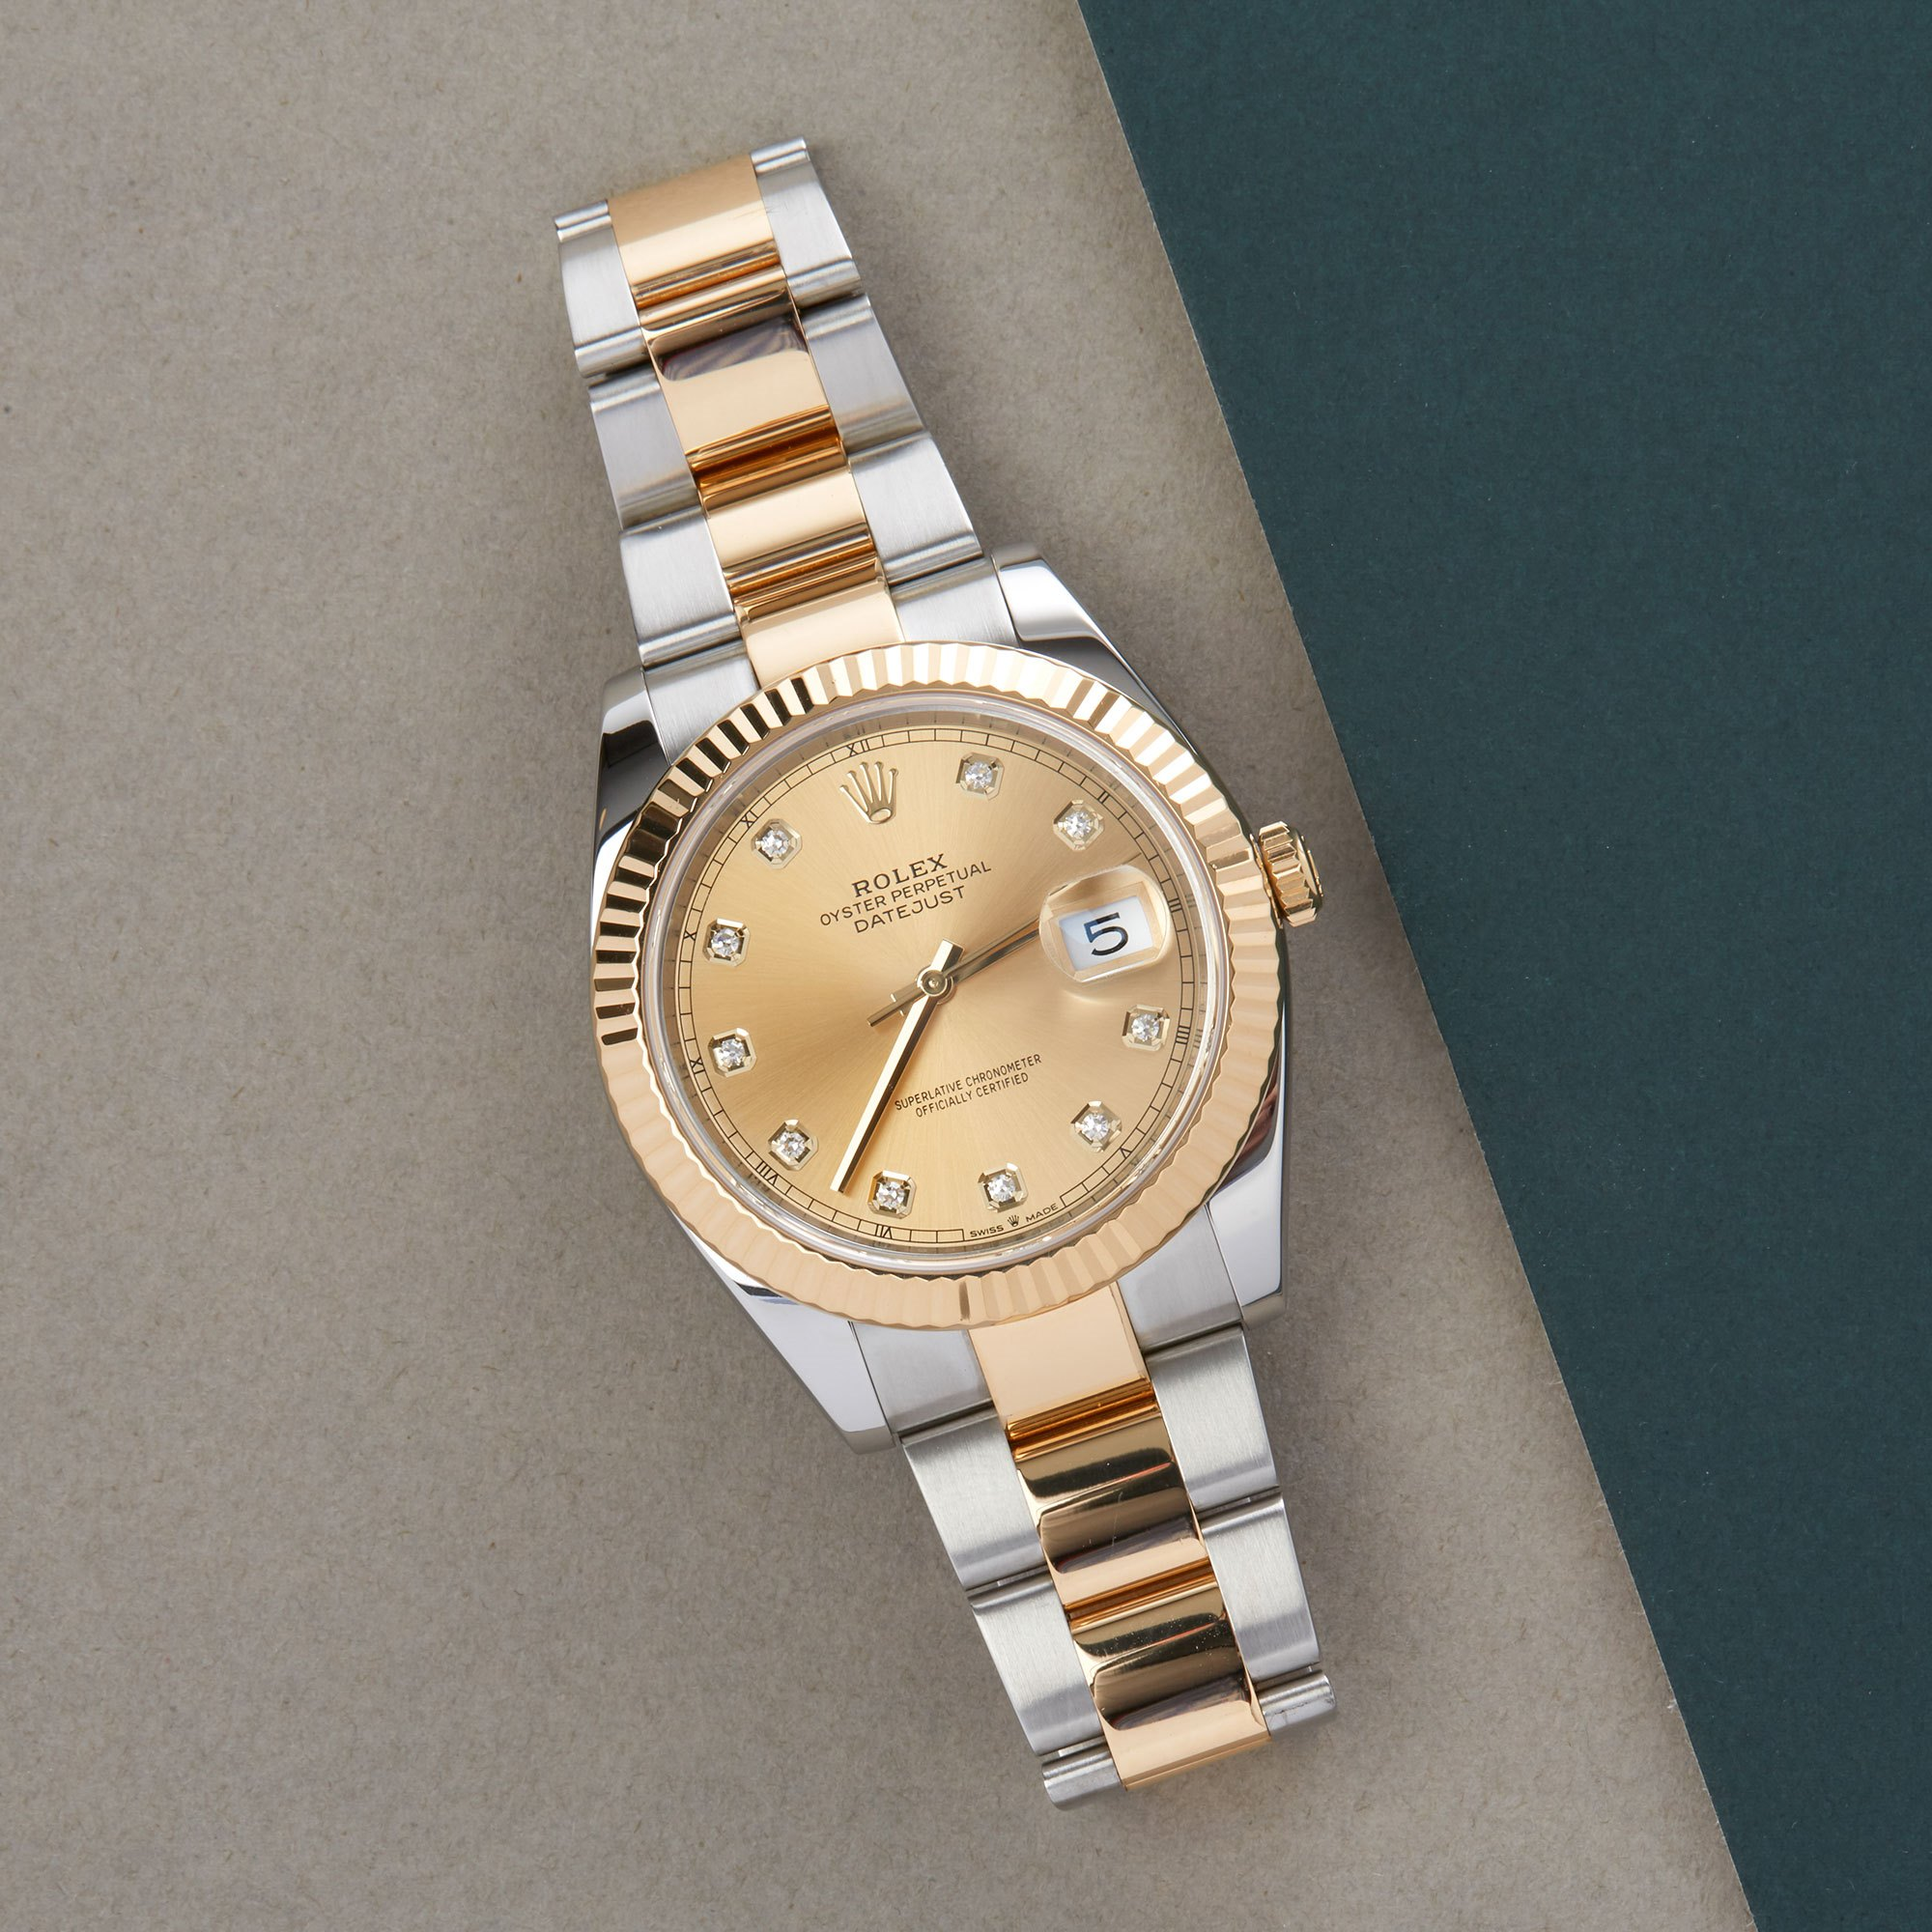 Rolex Datejust 41 126333 Men Yellow Gold & Stainless Steel Diamond Watch - Image 10 of 10